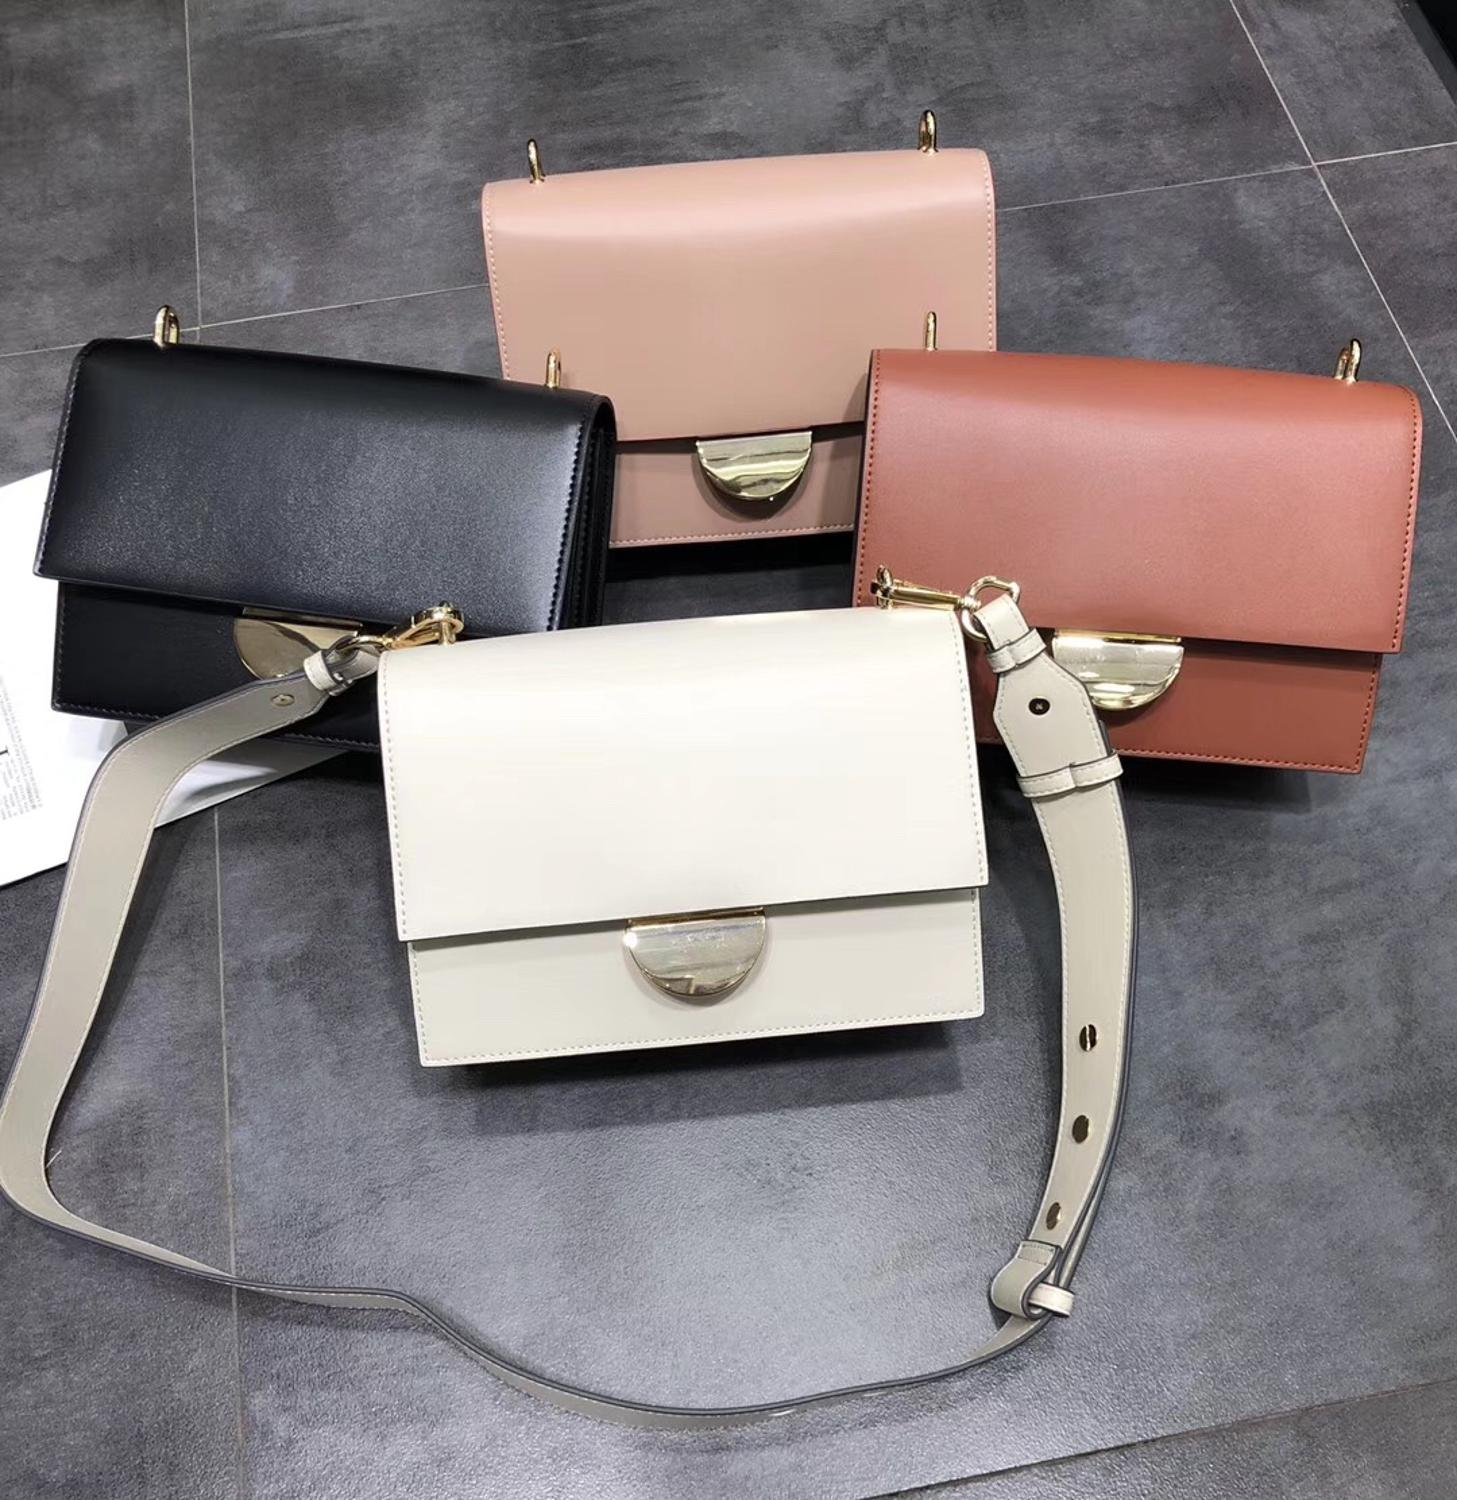 Kafunila genuine leather crossbody womens bag 2019 famous brand luxury handbags women bags designer ladies hand bags flap bolsaKafunila genuine leather crossbody womens bag 2019 famous brand luxury handbags women bags designer ladies hand bags flap bolsa